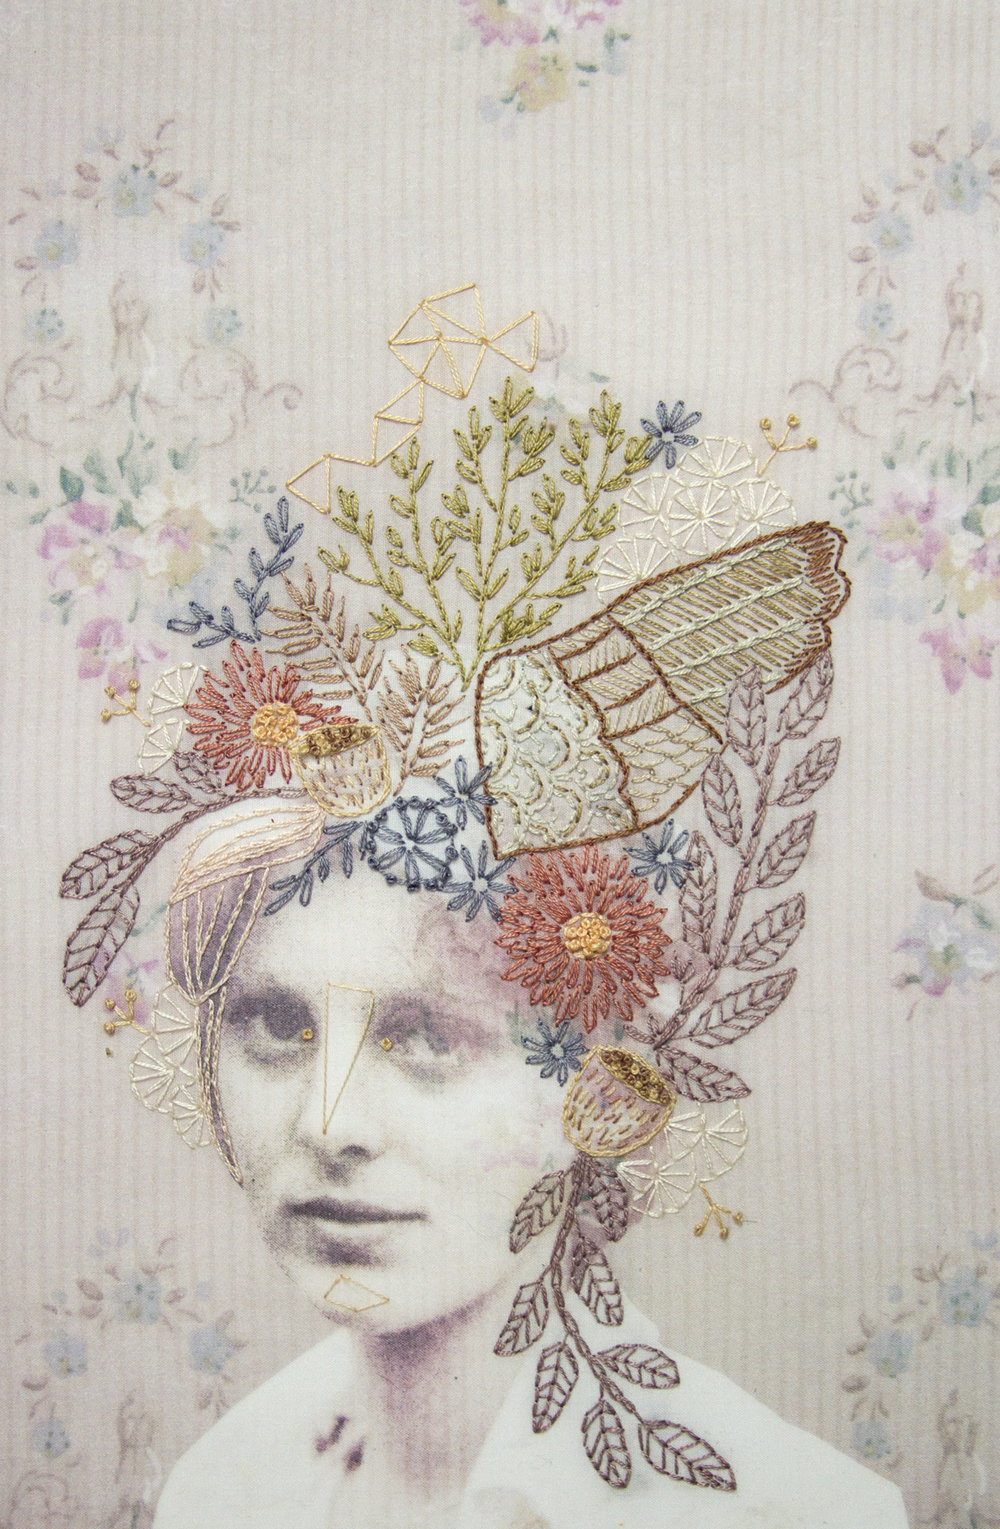 Chelsea Revelle,  Mildred:  Fiber art, 12x18